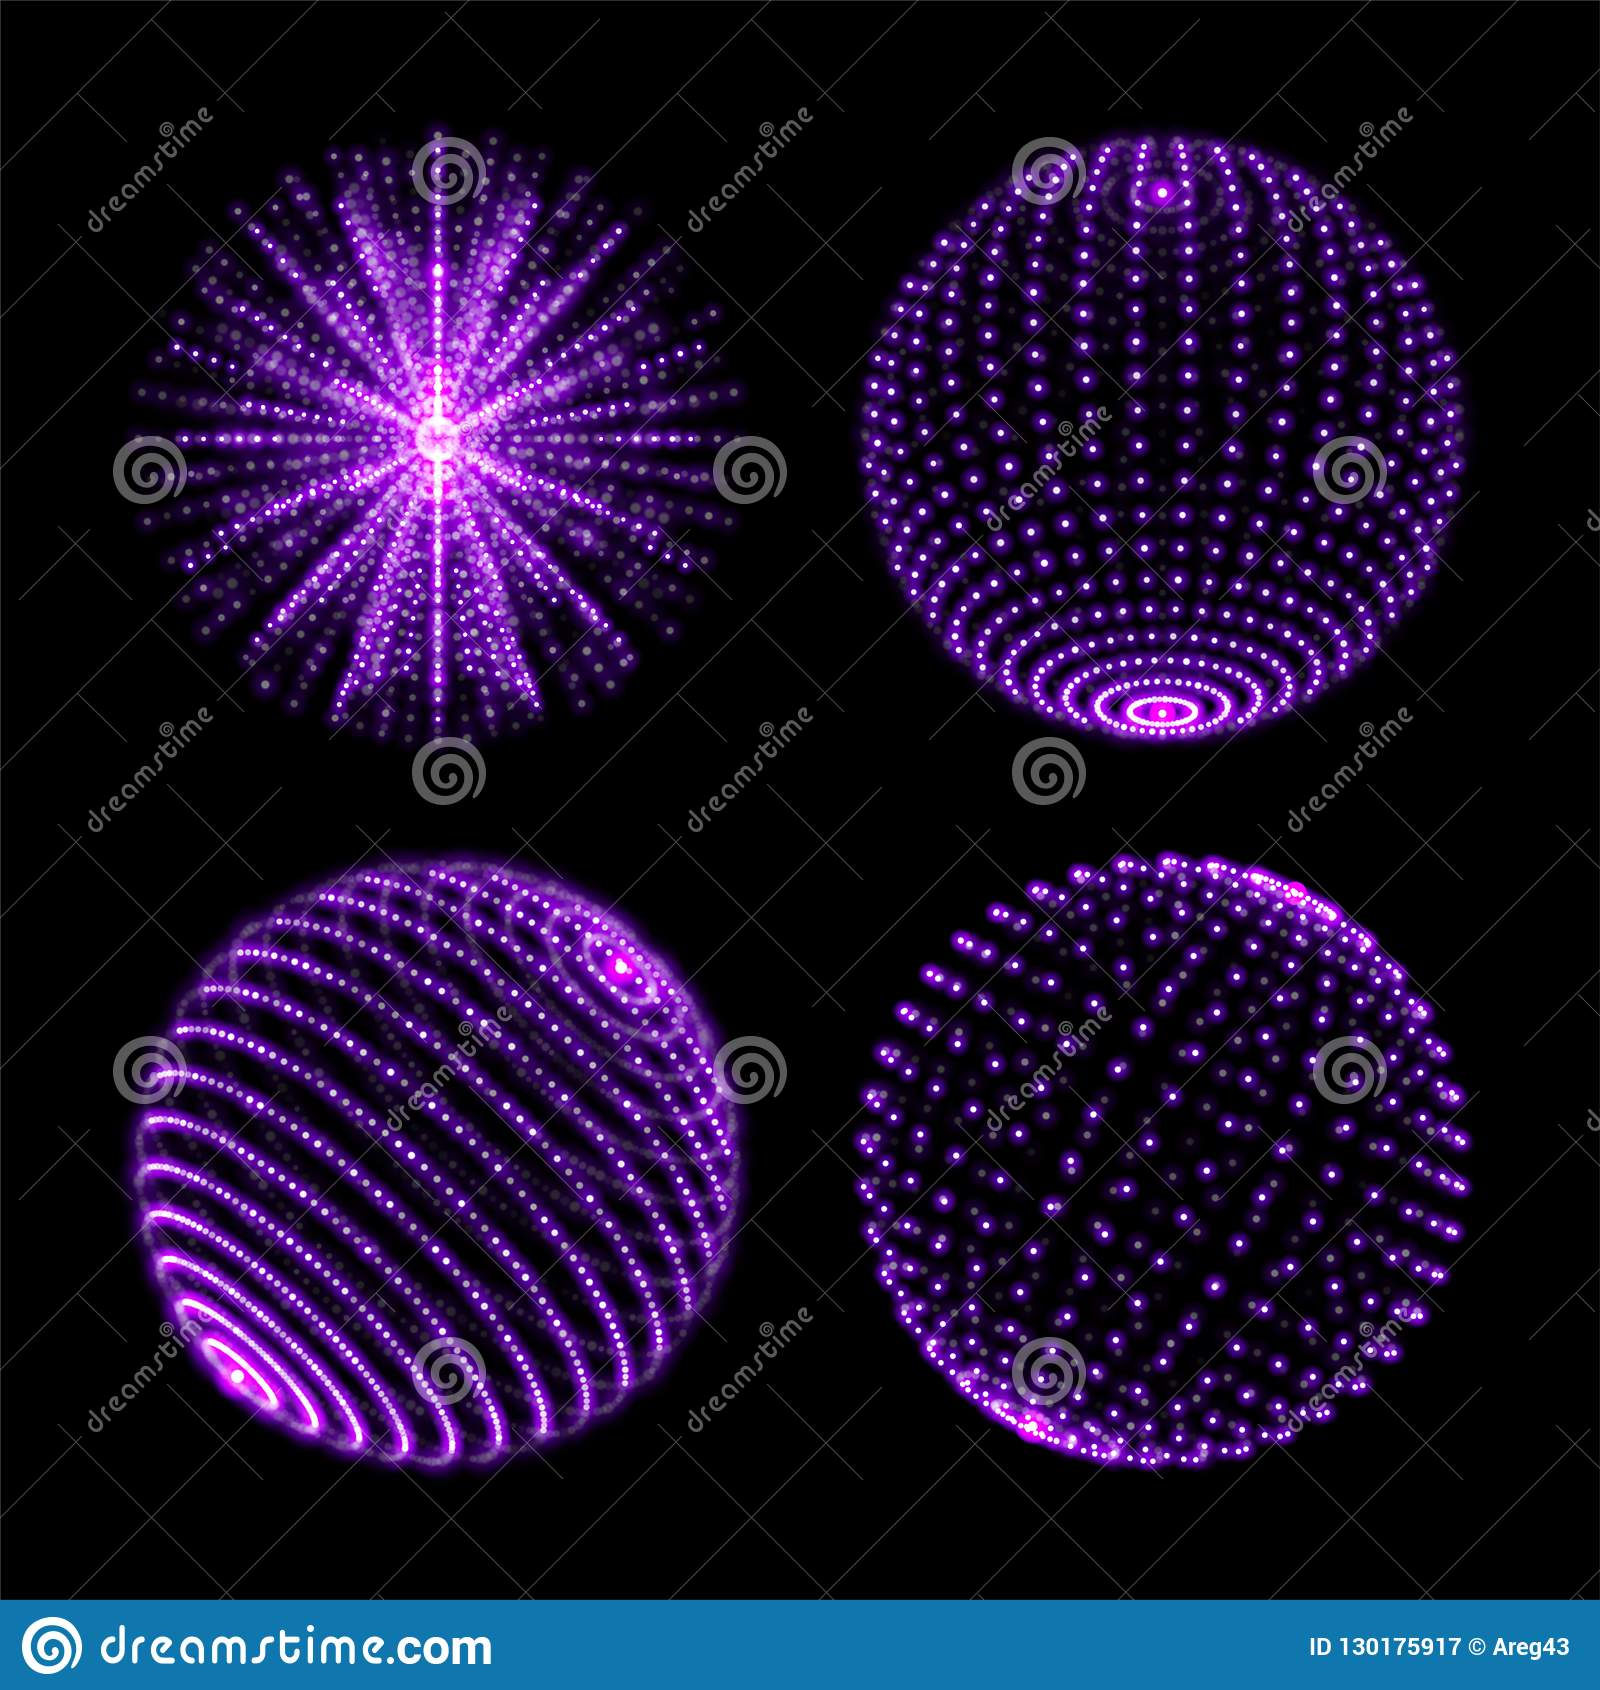 Light sphere ball. Vector neon light globes with spiral ultraviolet sparkles and energy glow rays or particles with dot connection